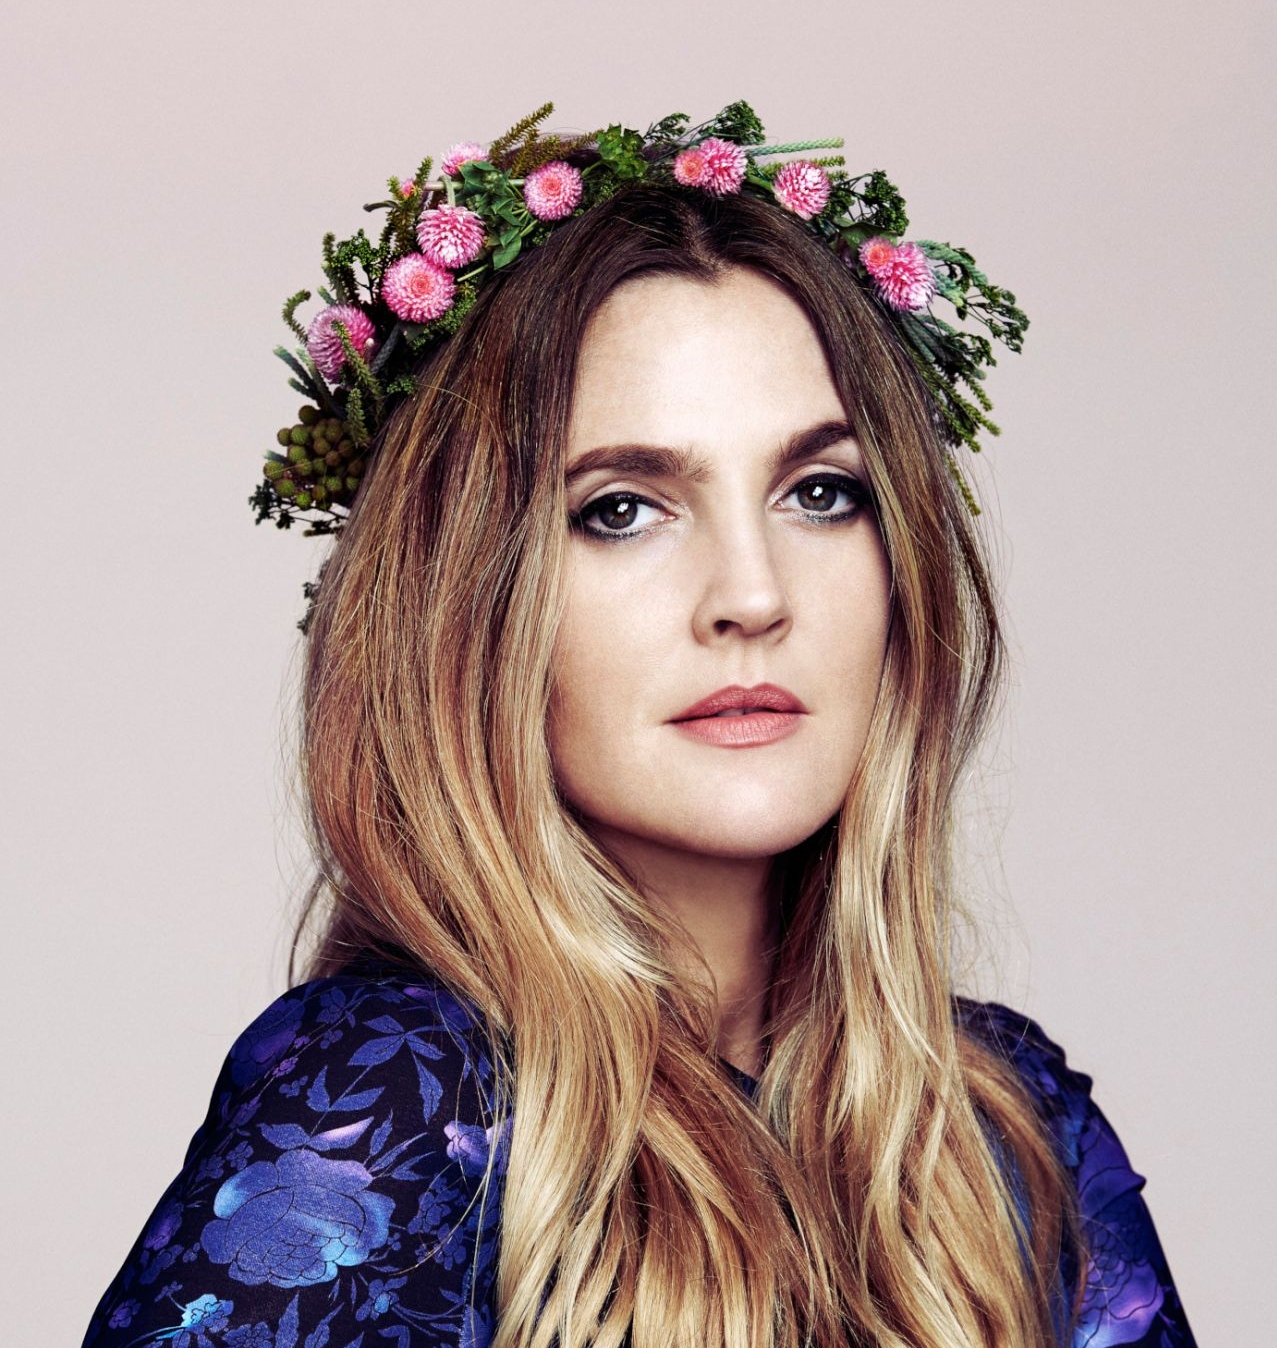 Drew Barrymore - Cancer Moon